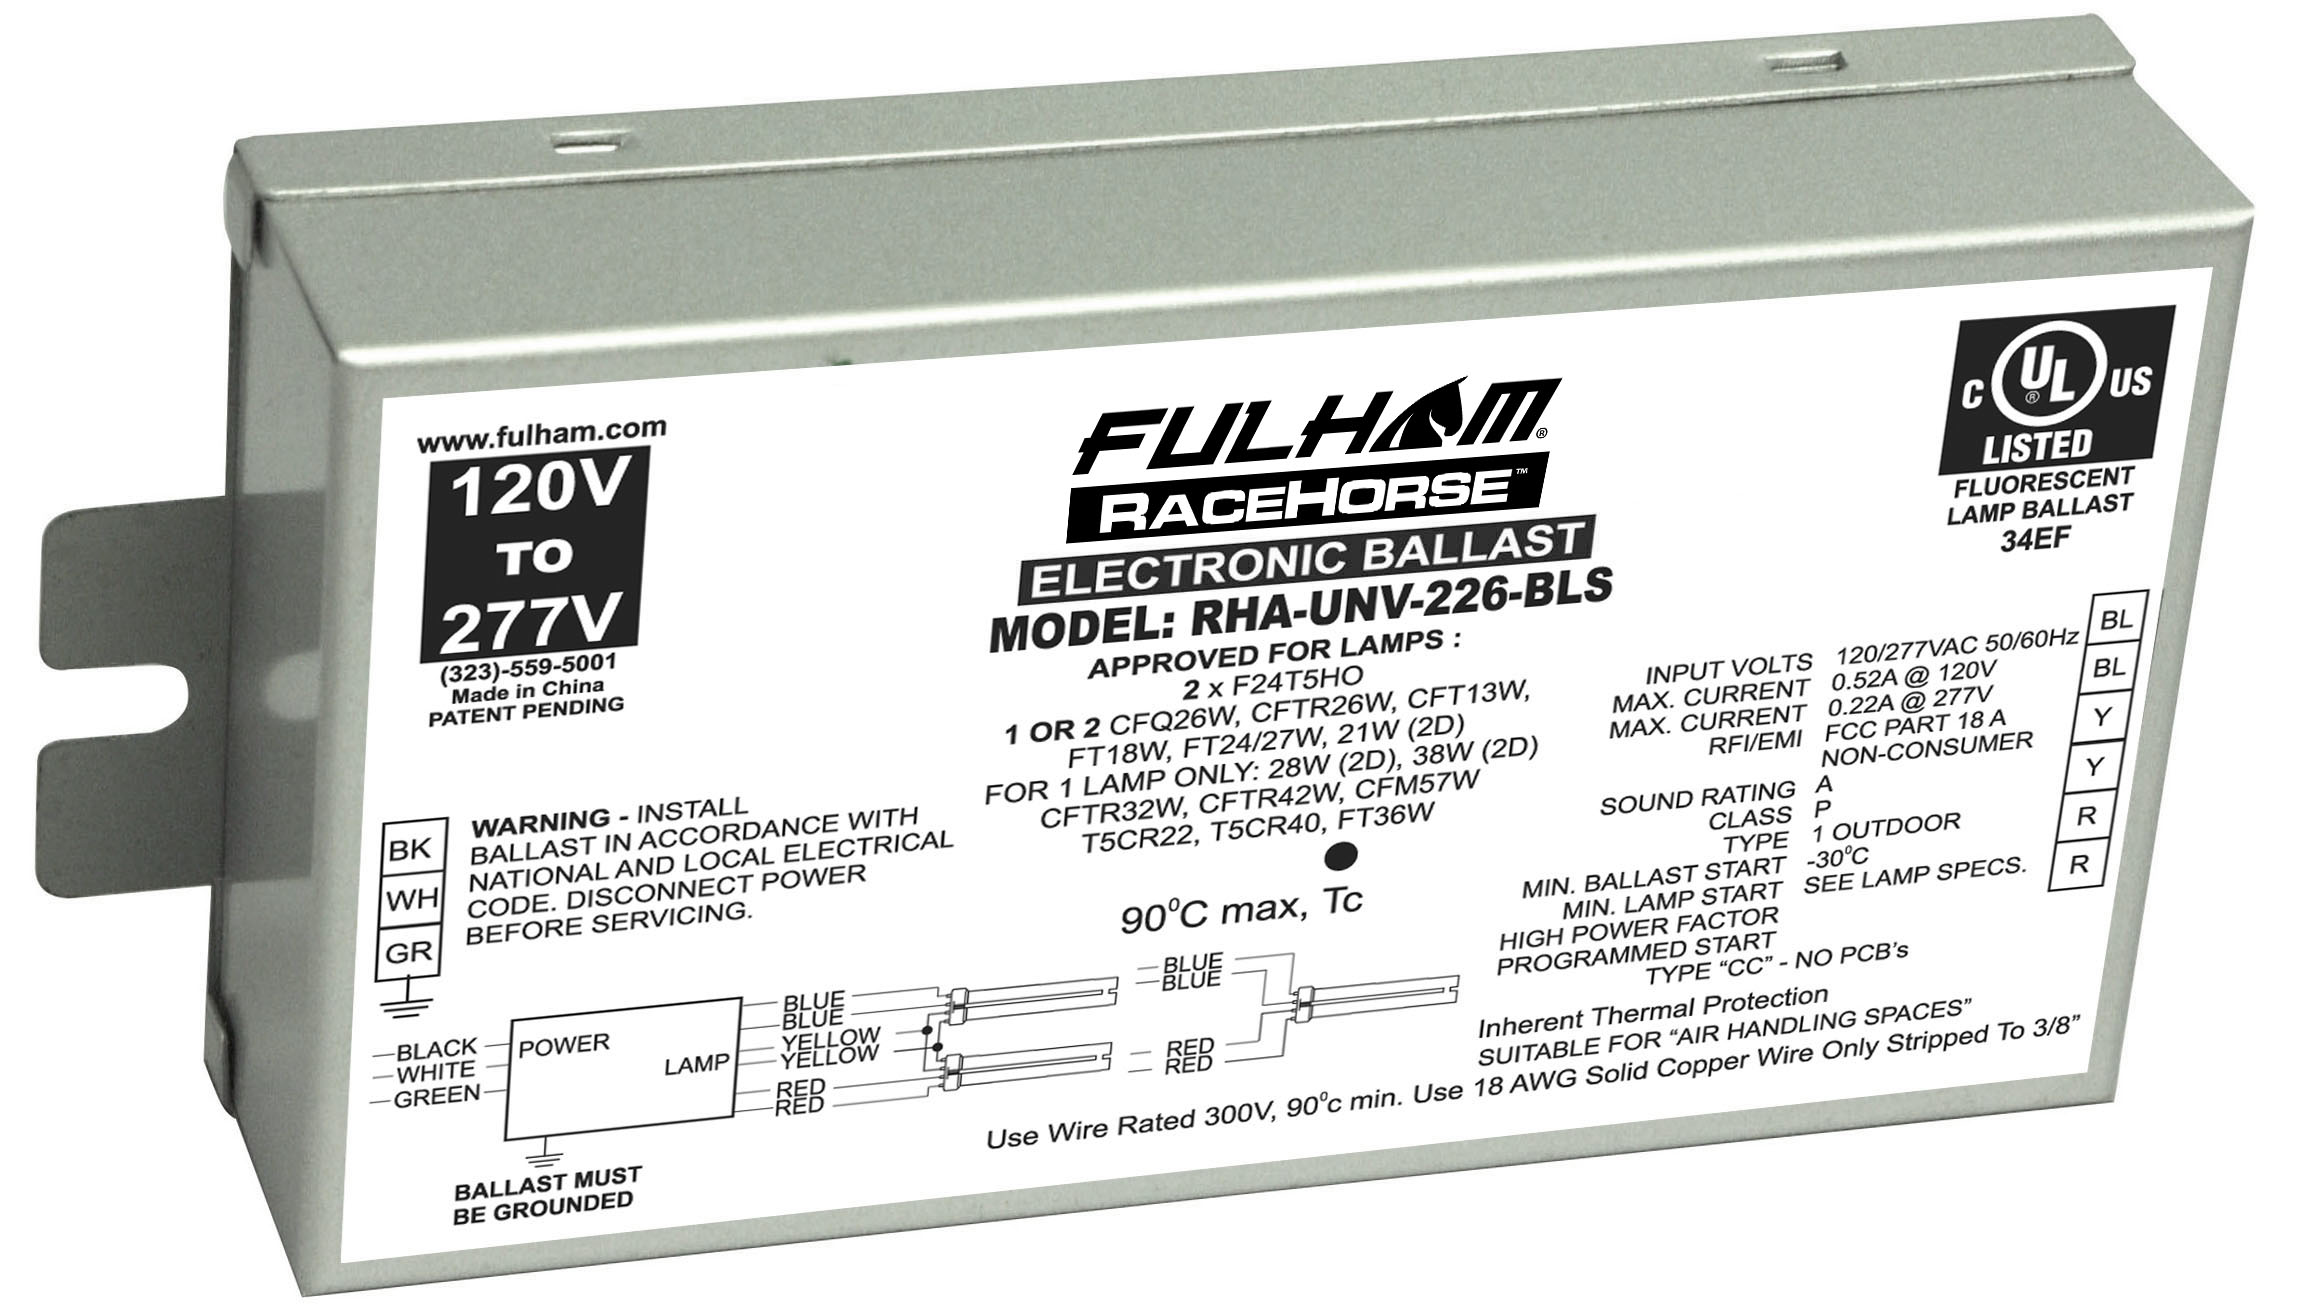 Fulham,RHA-UNV-226-BLS,RaceHorse A - CFL Ballast - Universal Voltage - (PS) - for 1 or 2 x 26W CFL's - BLS Model